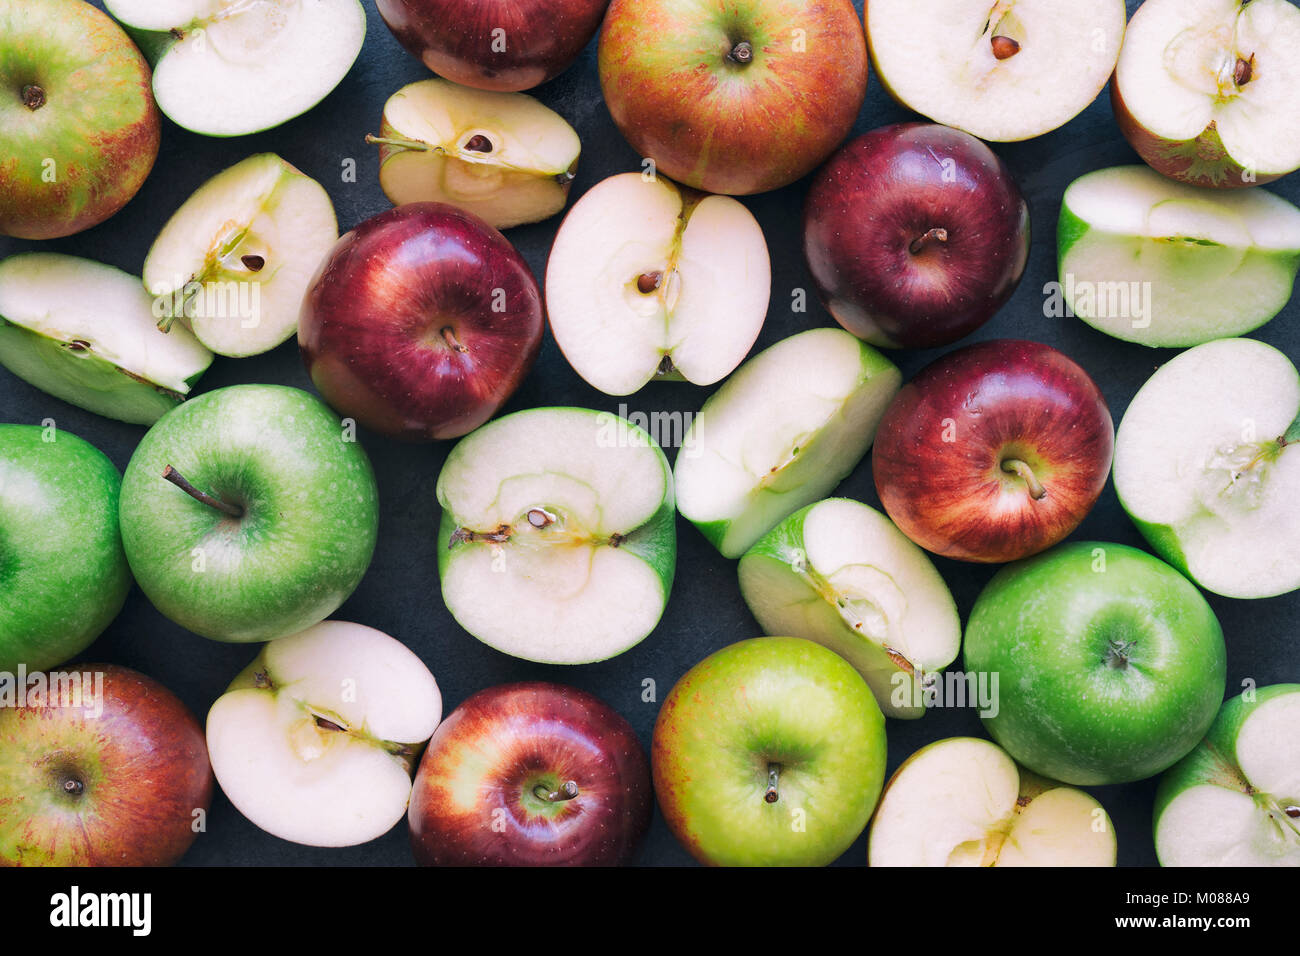 Red and Green apples on a slate background - Stock Image